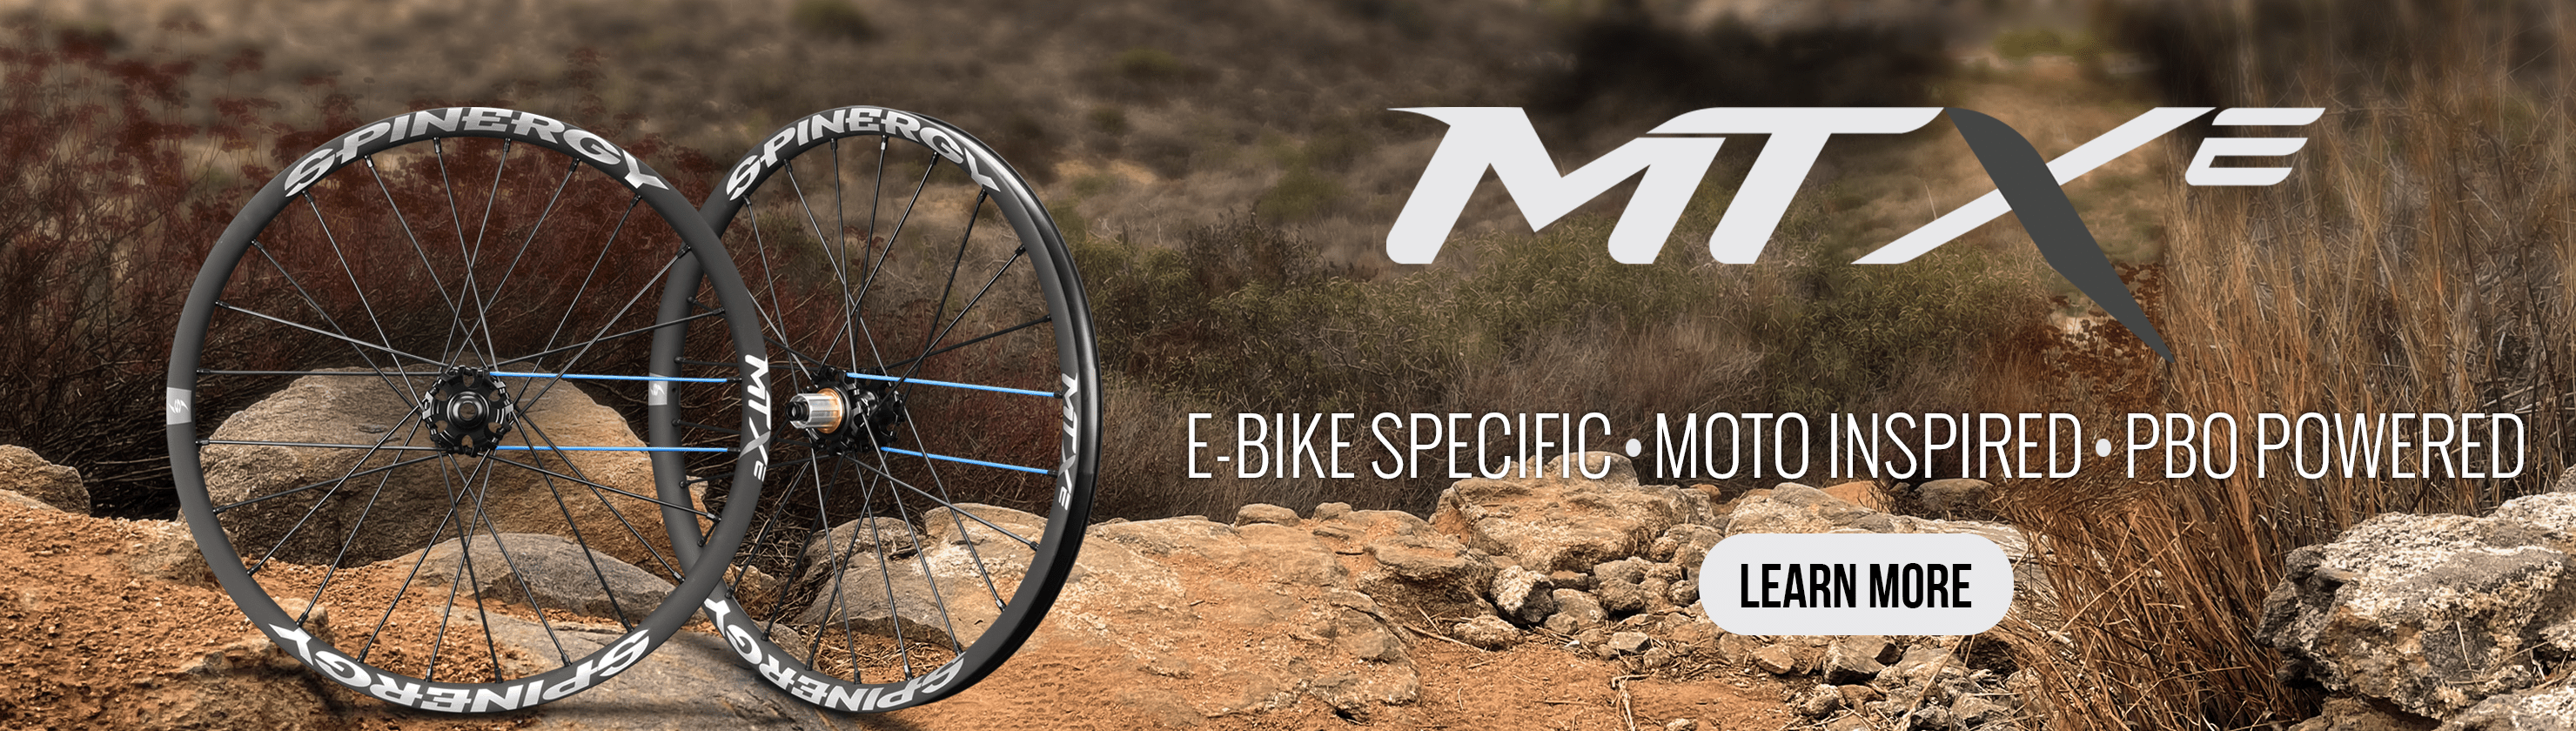 MTX-e_bicycle_landing_banner_2-min.png